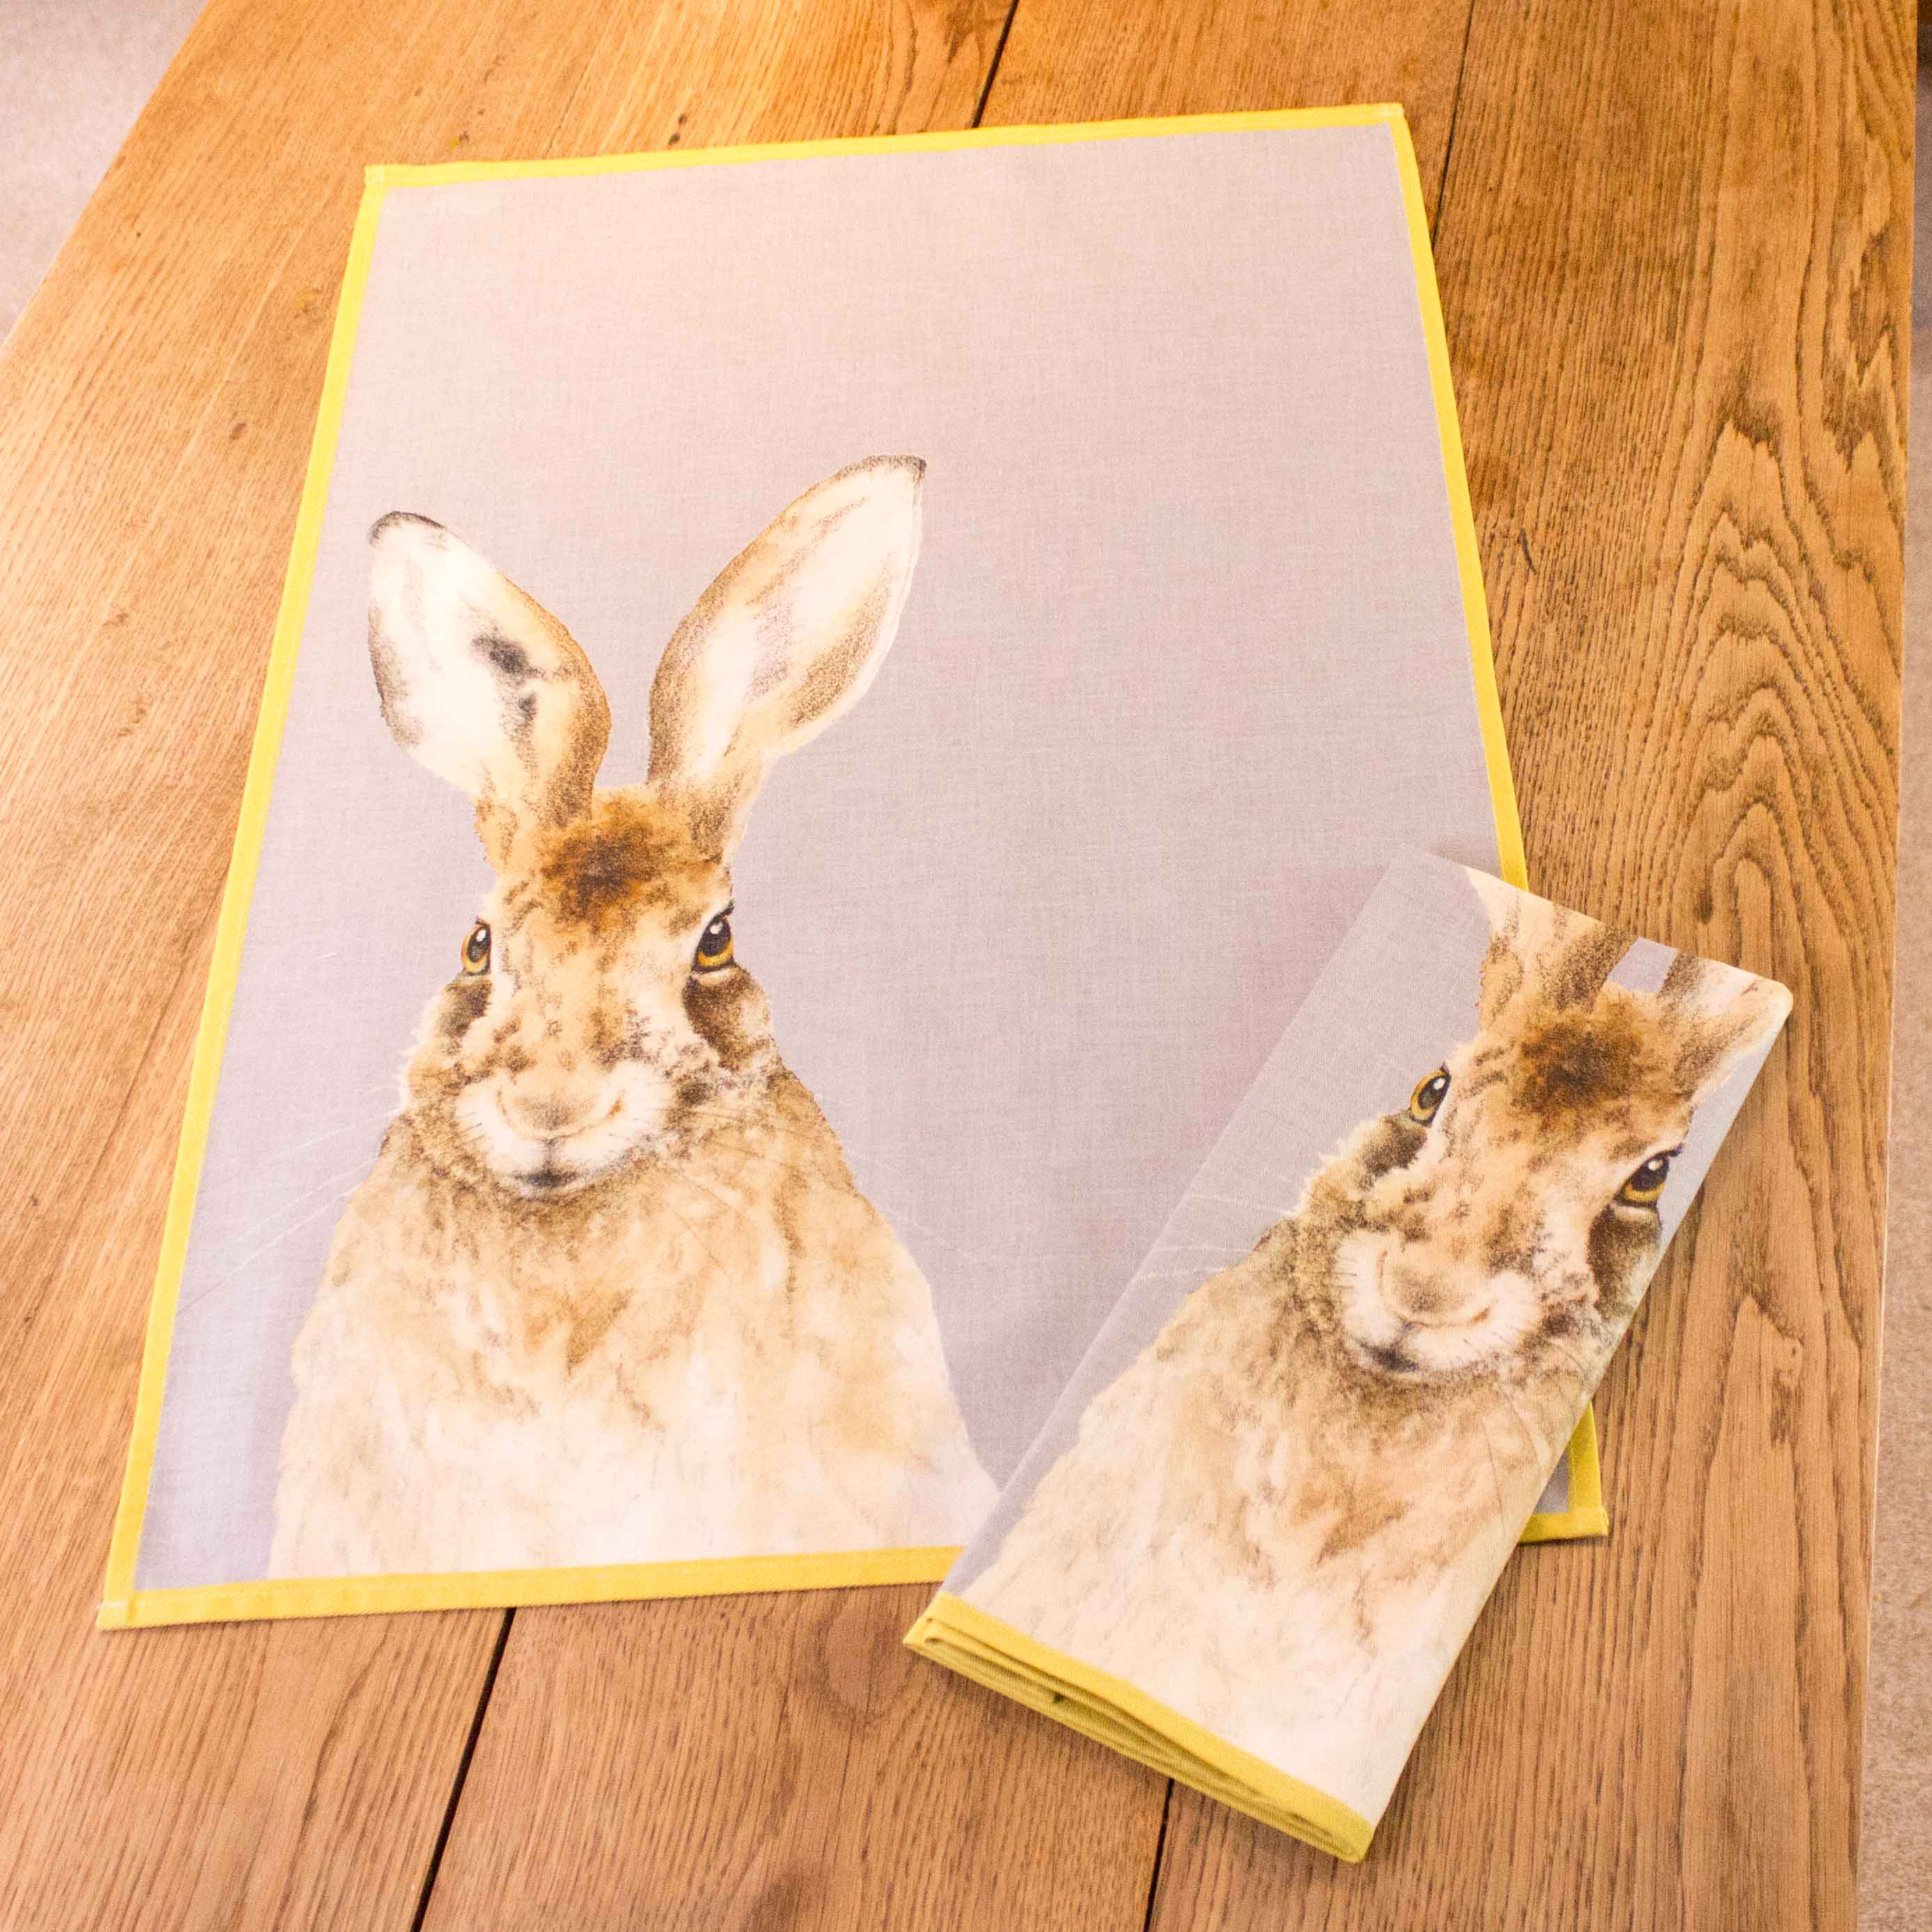 Hare tea towel - hare portrait